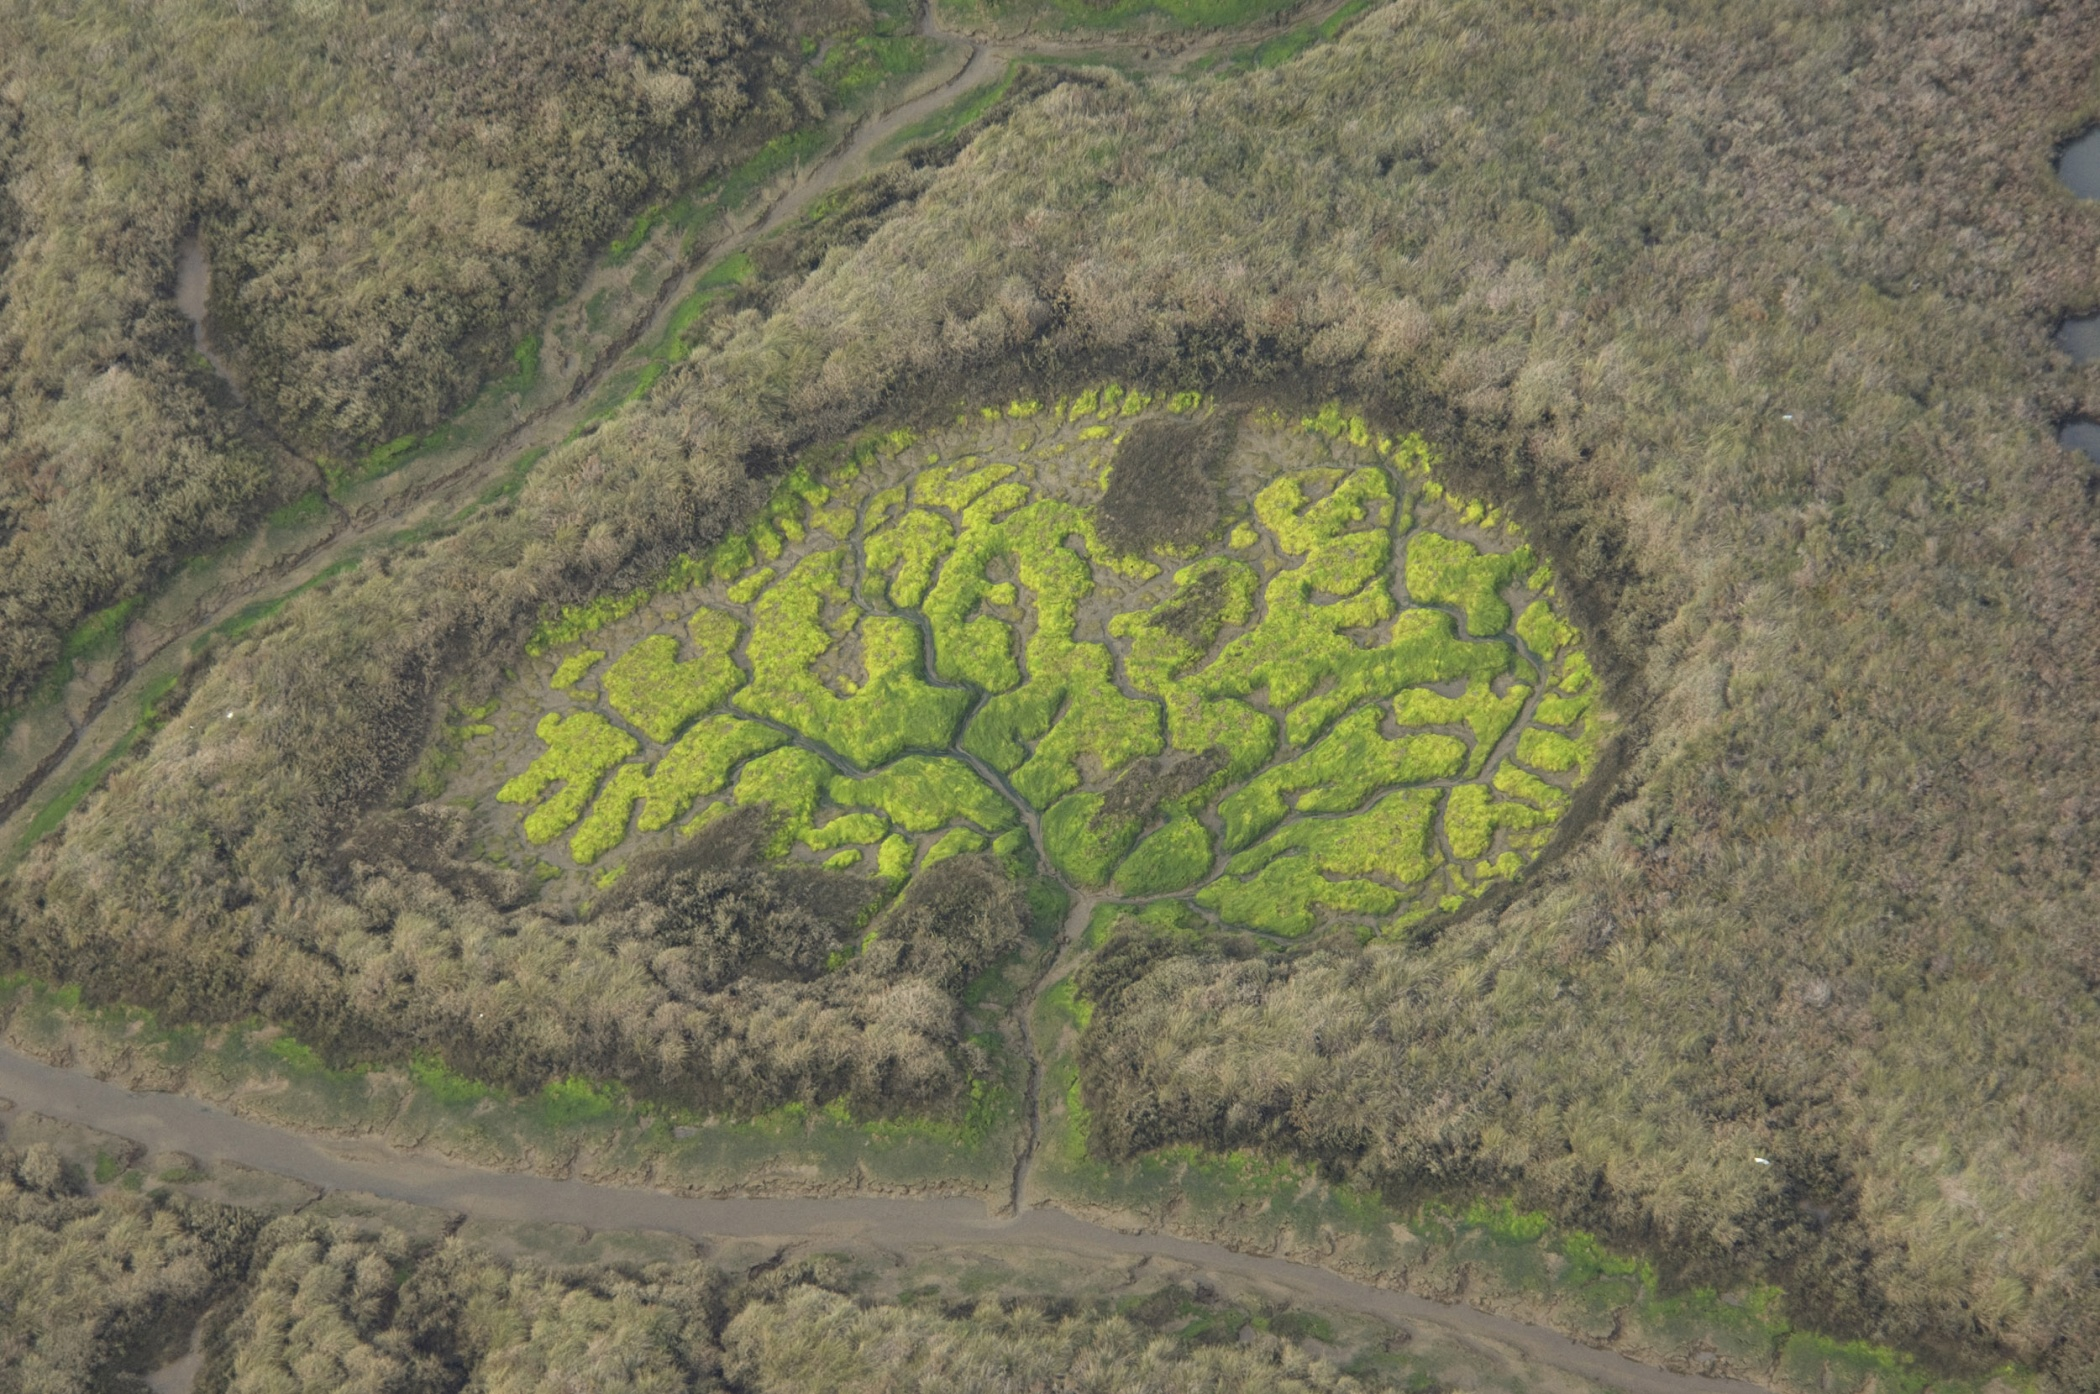 Aerial nature - Hector Garrido, Aerial and human photography